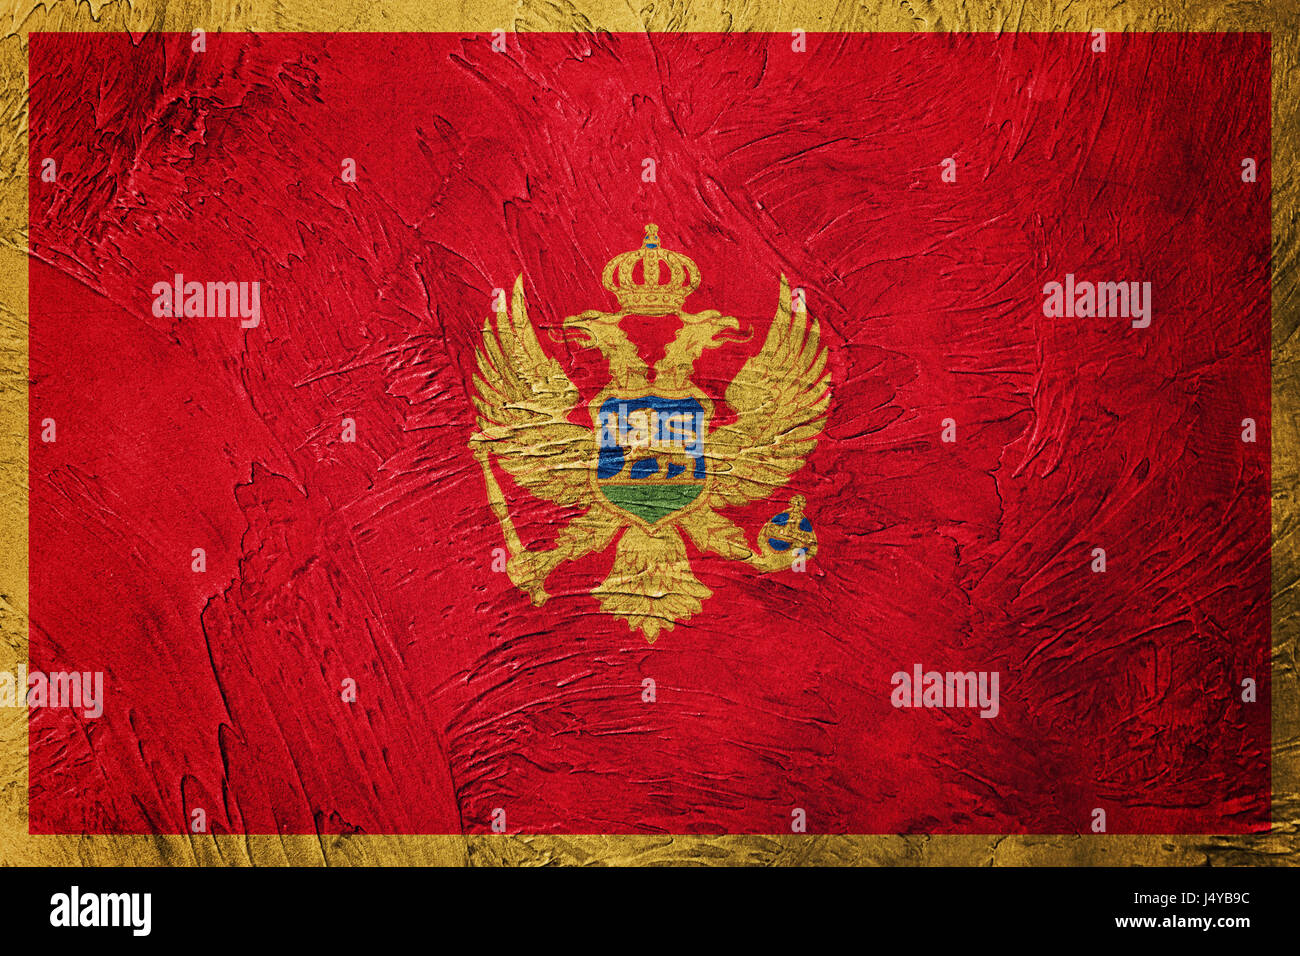 Grunge Montenegro flag. Montenegro flag with grunge texture. Stock Photo